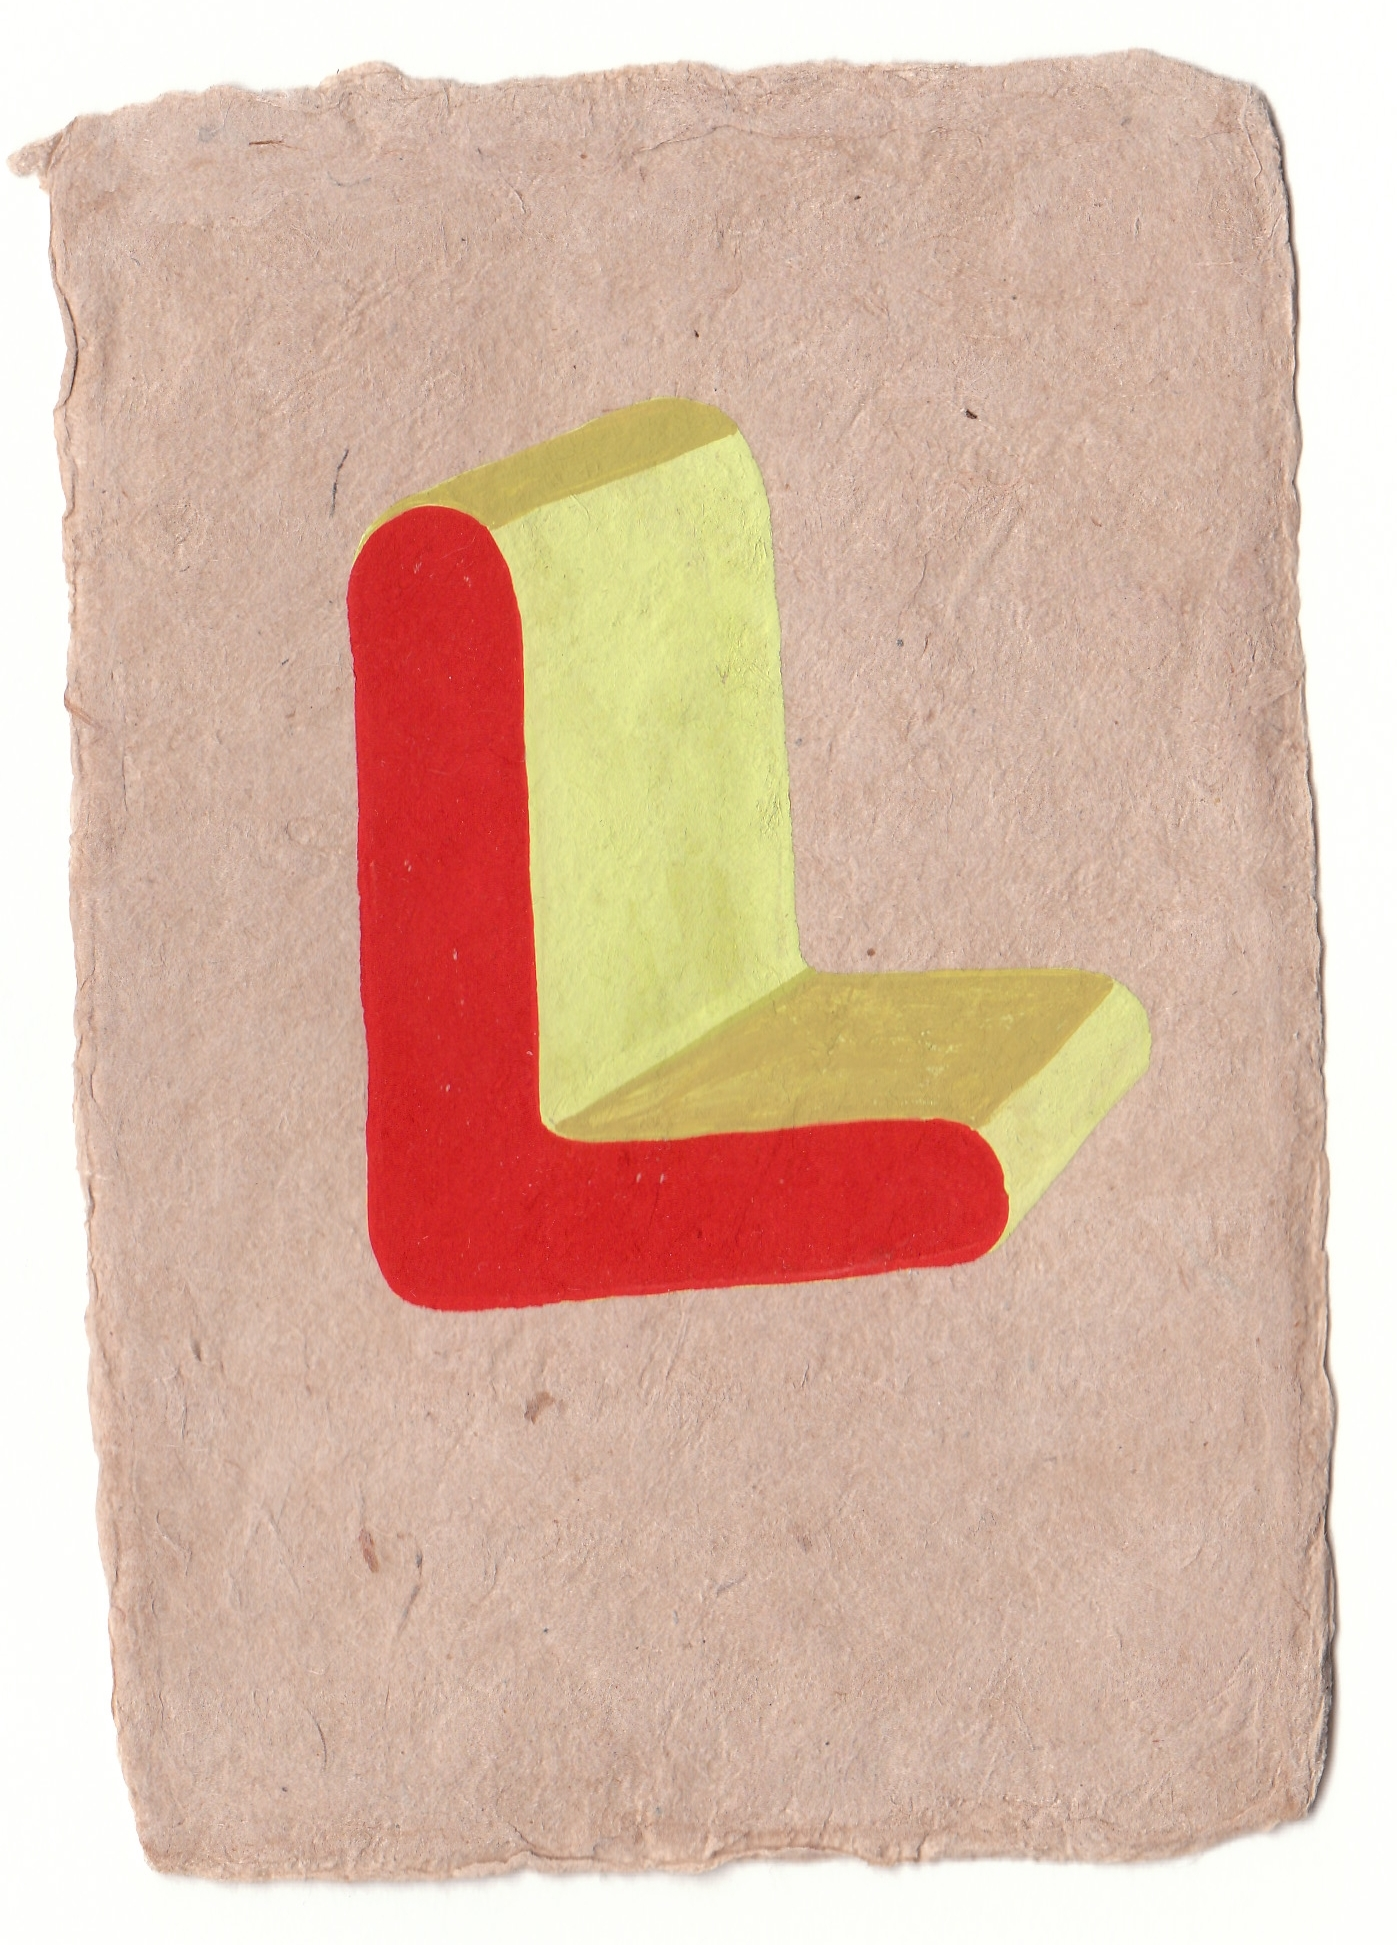 F'er's and Friends